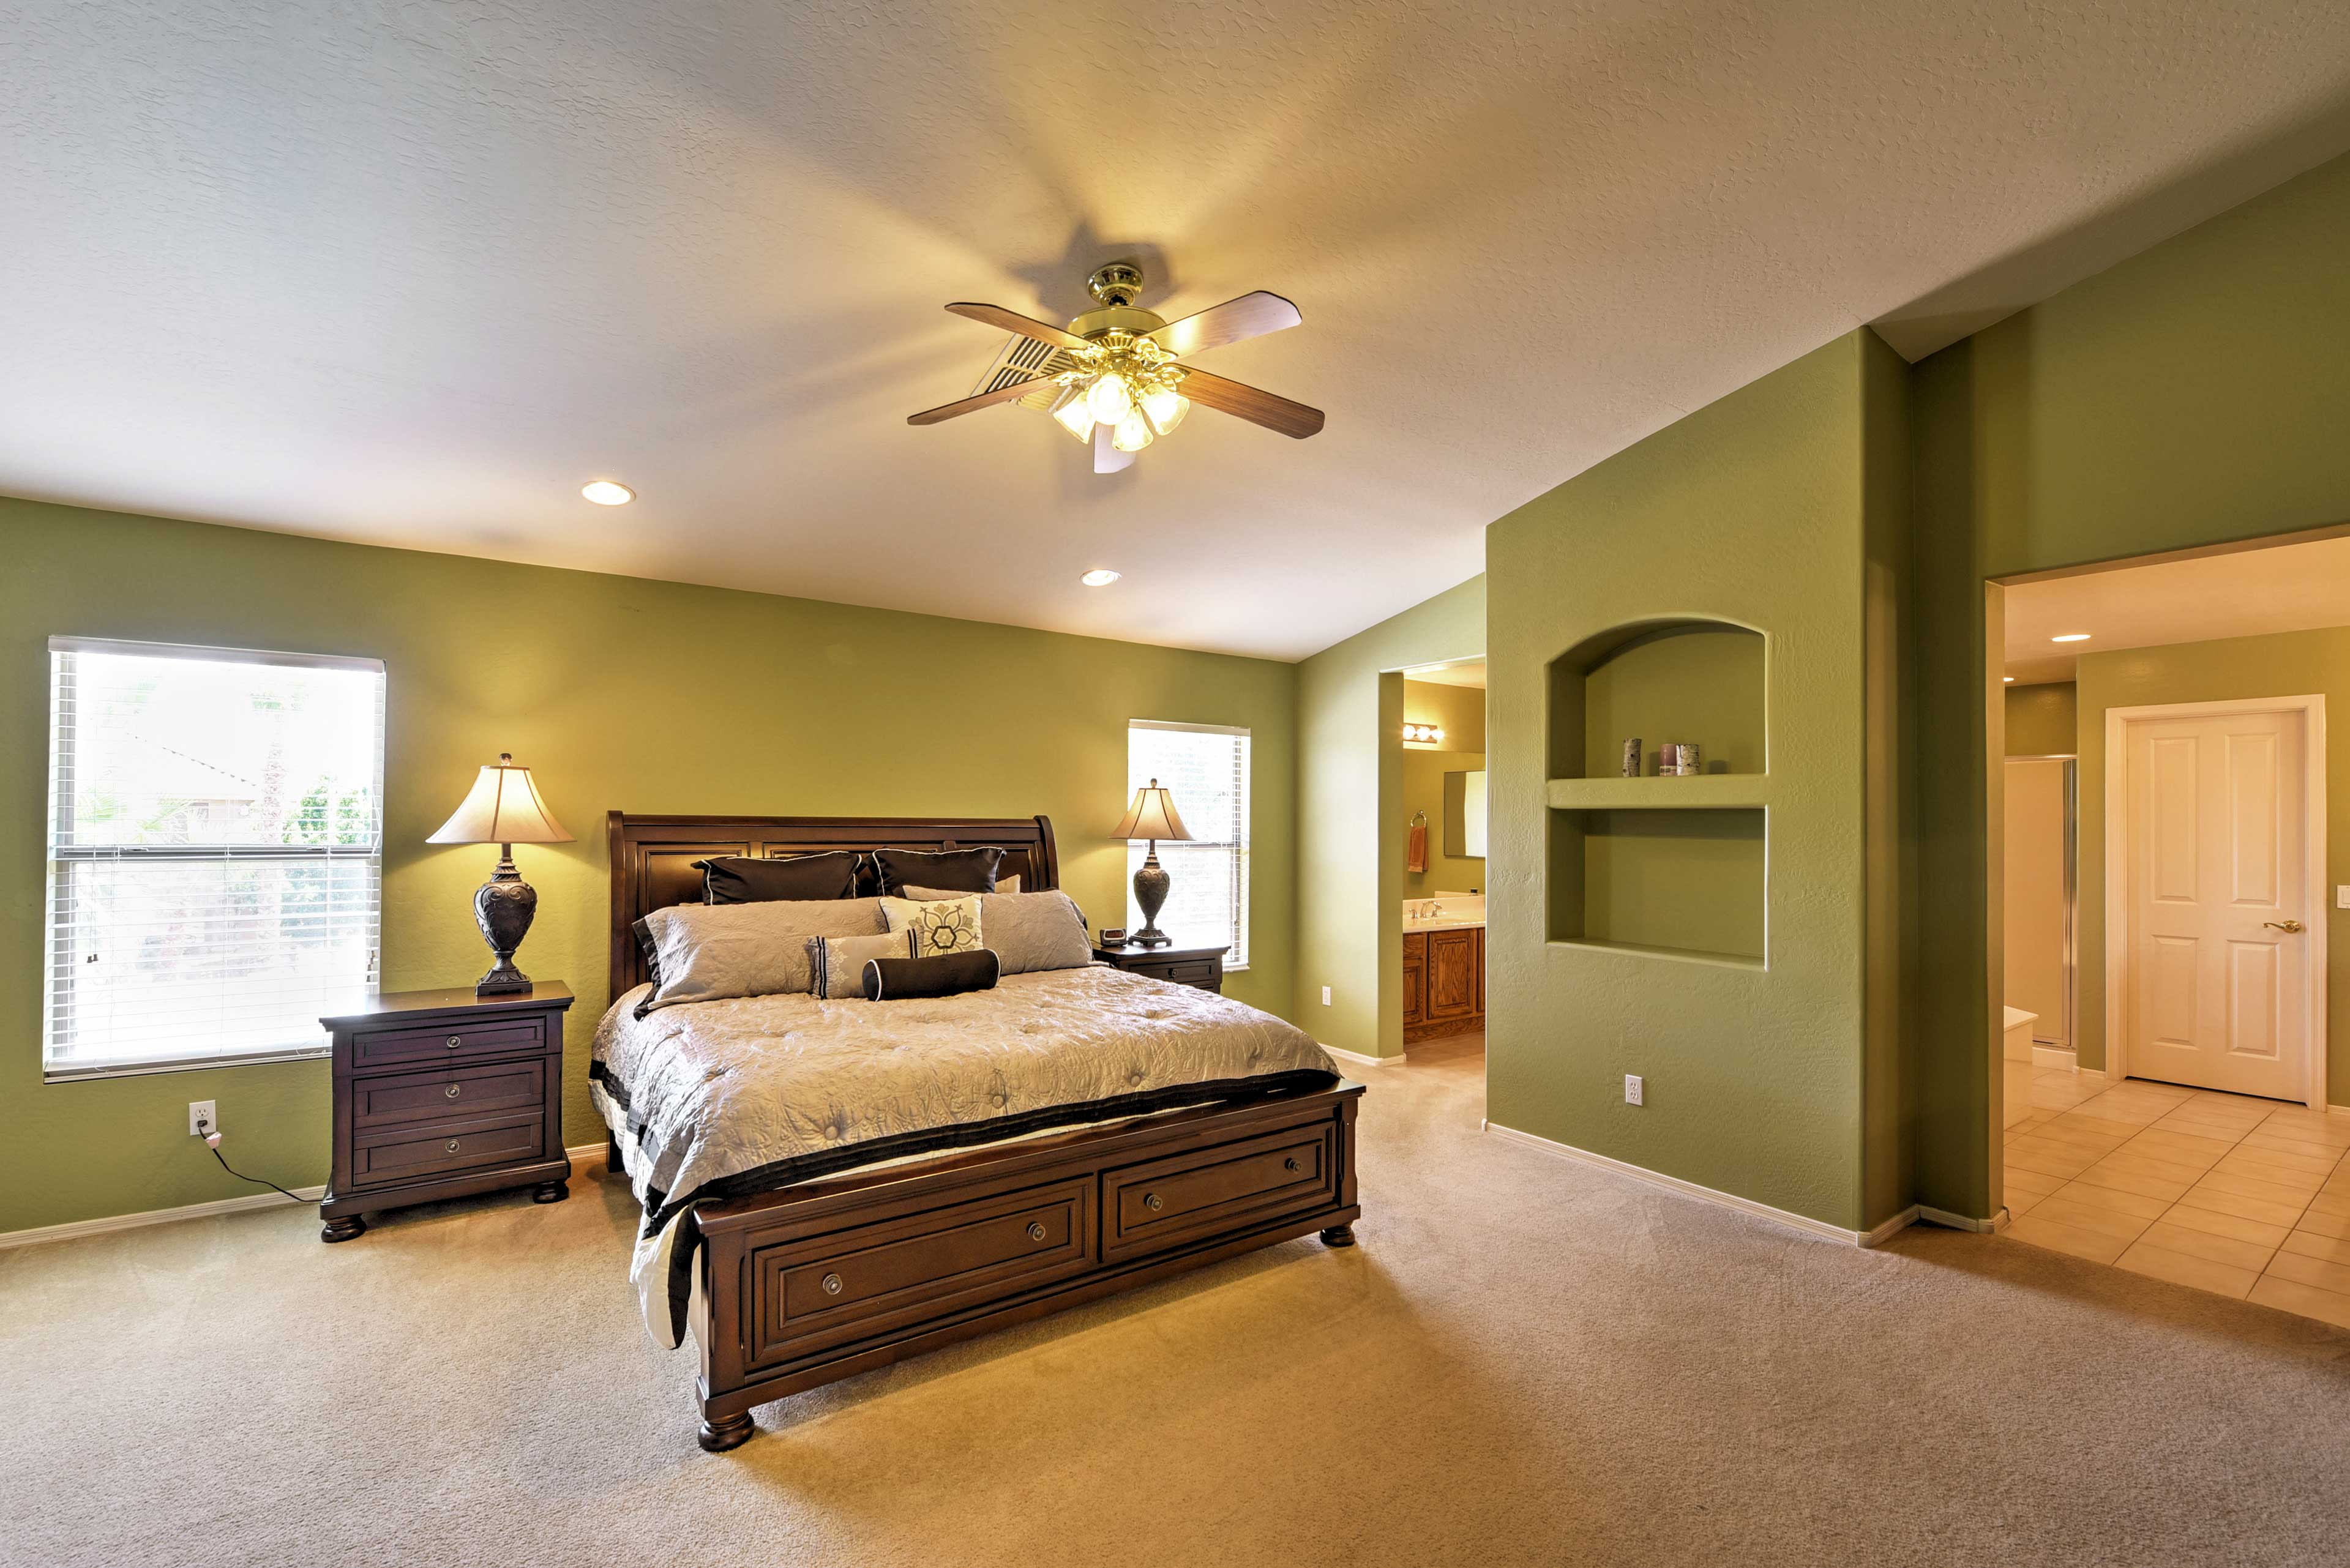 The master bedroom has a king bed, sure to delight the heads of the household.